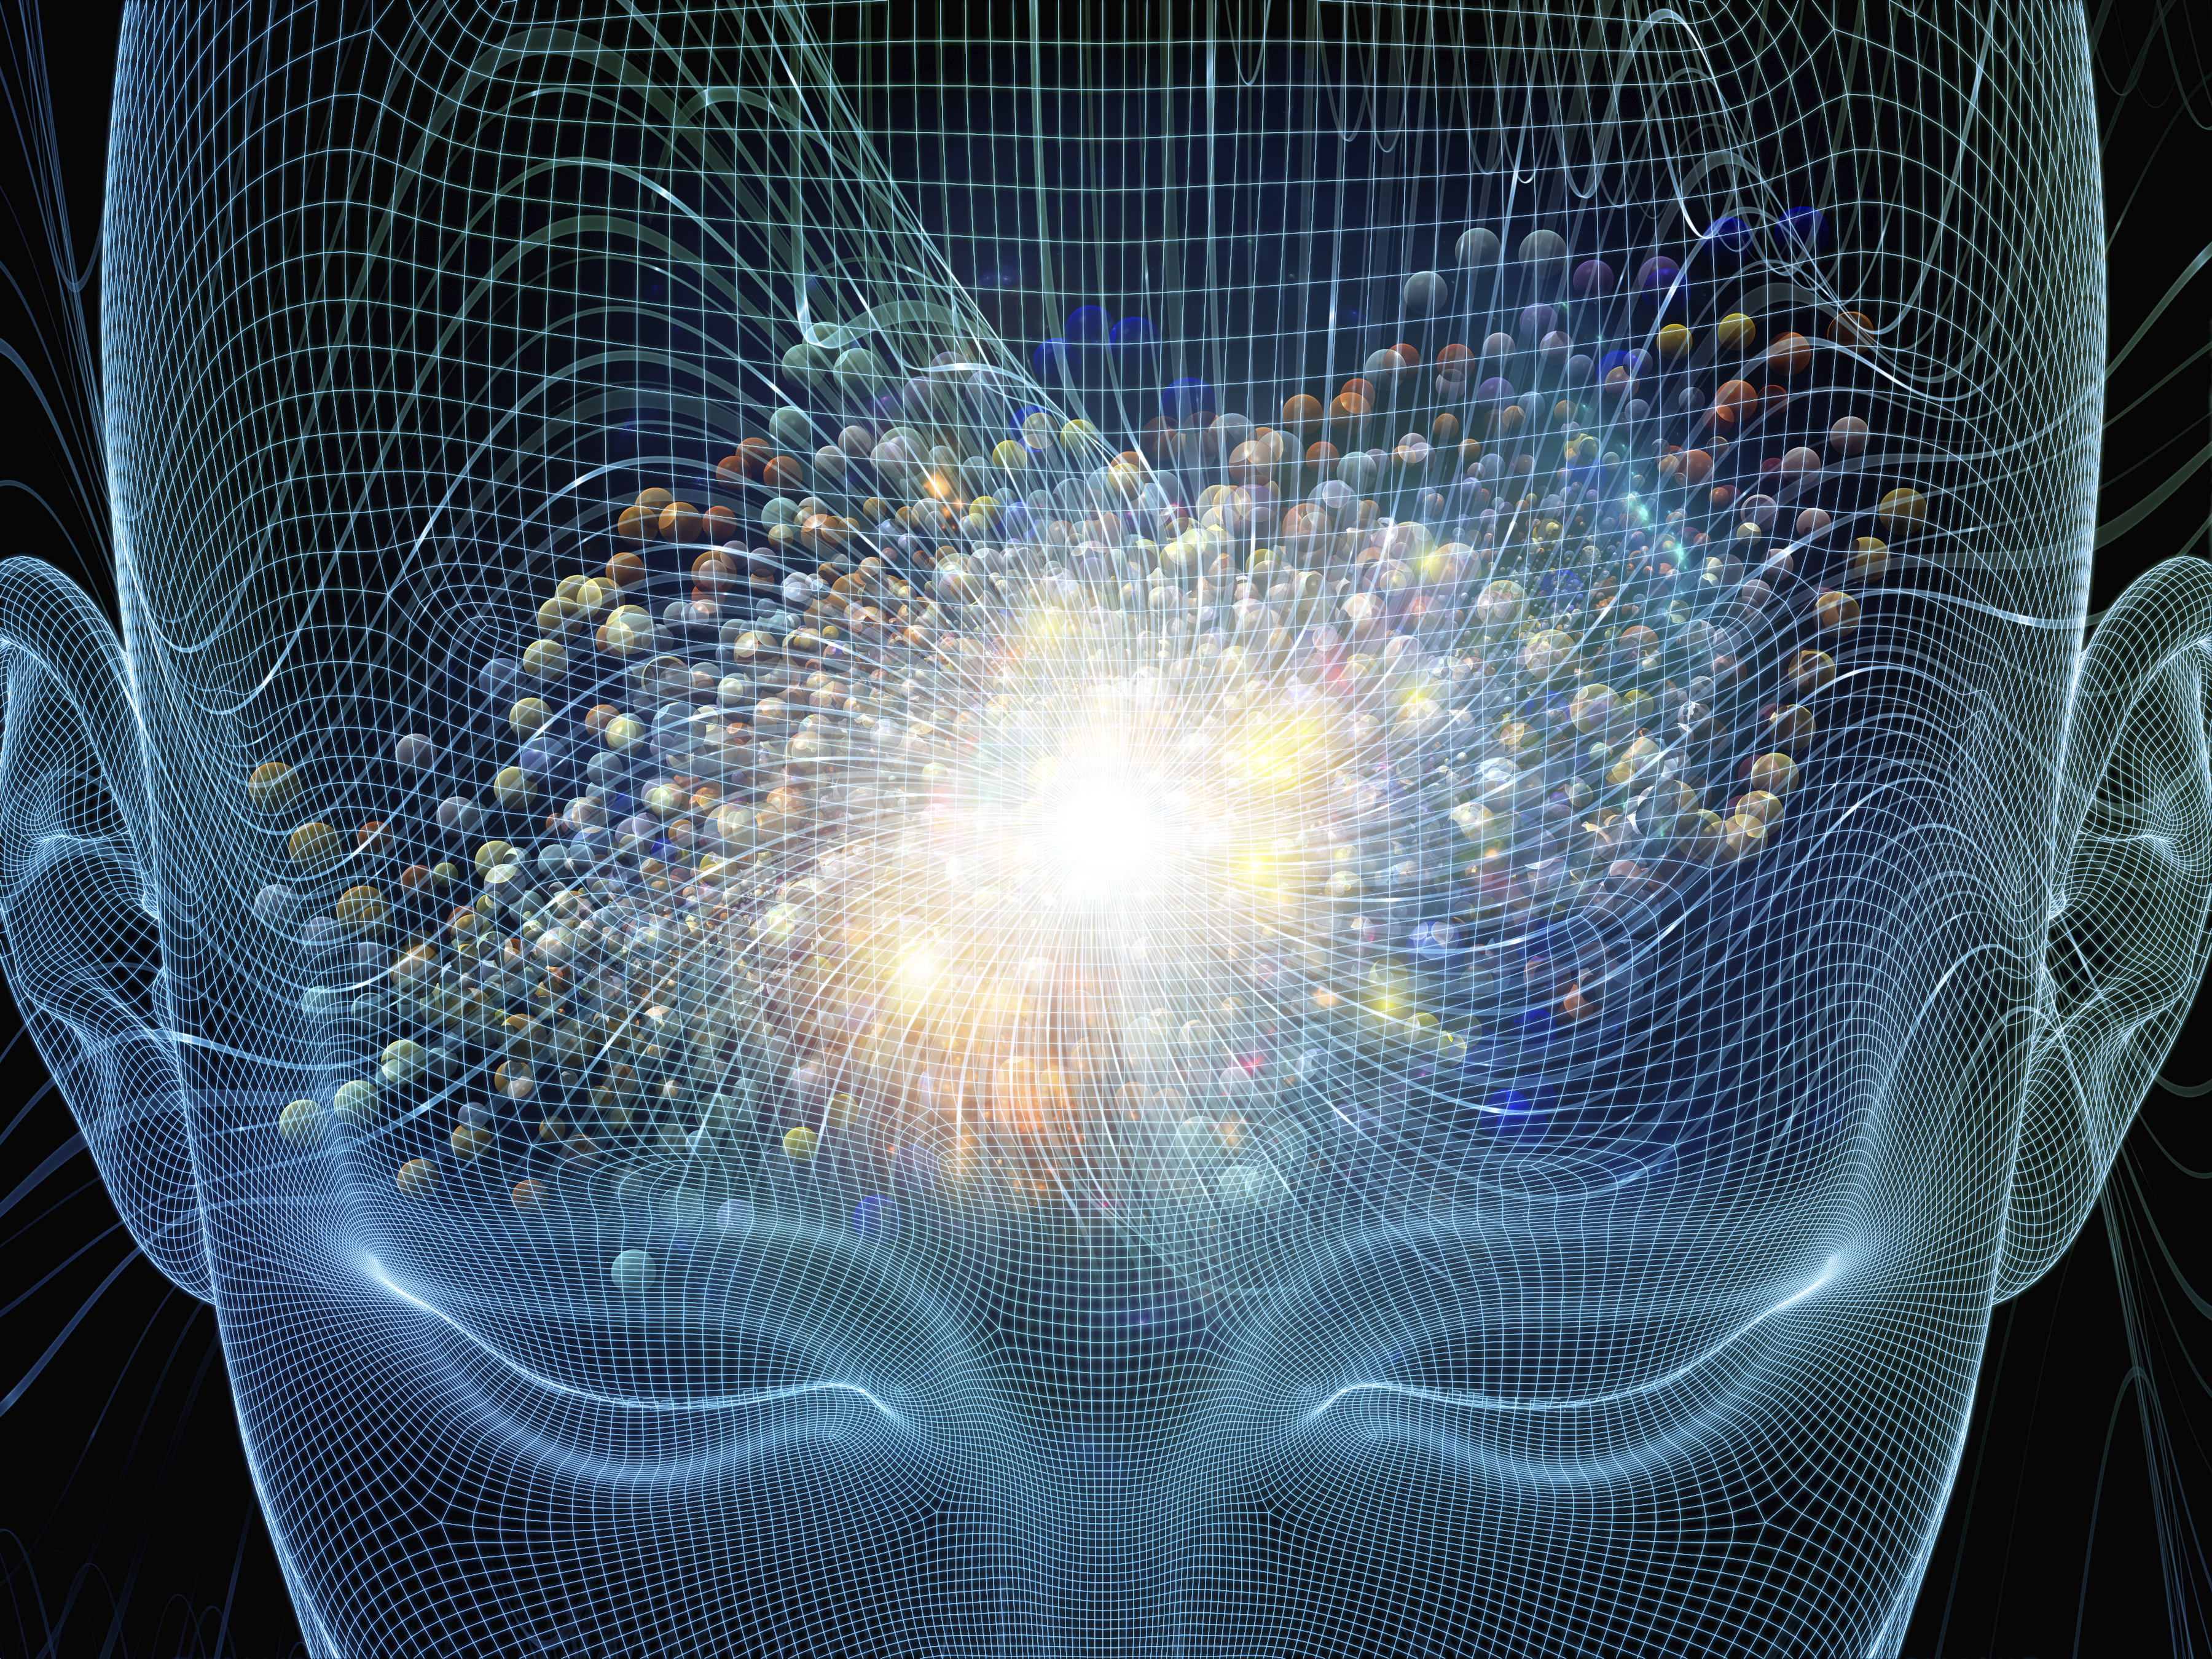 Meditators Focus Good Thoughts on People, Effects Studied